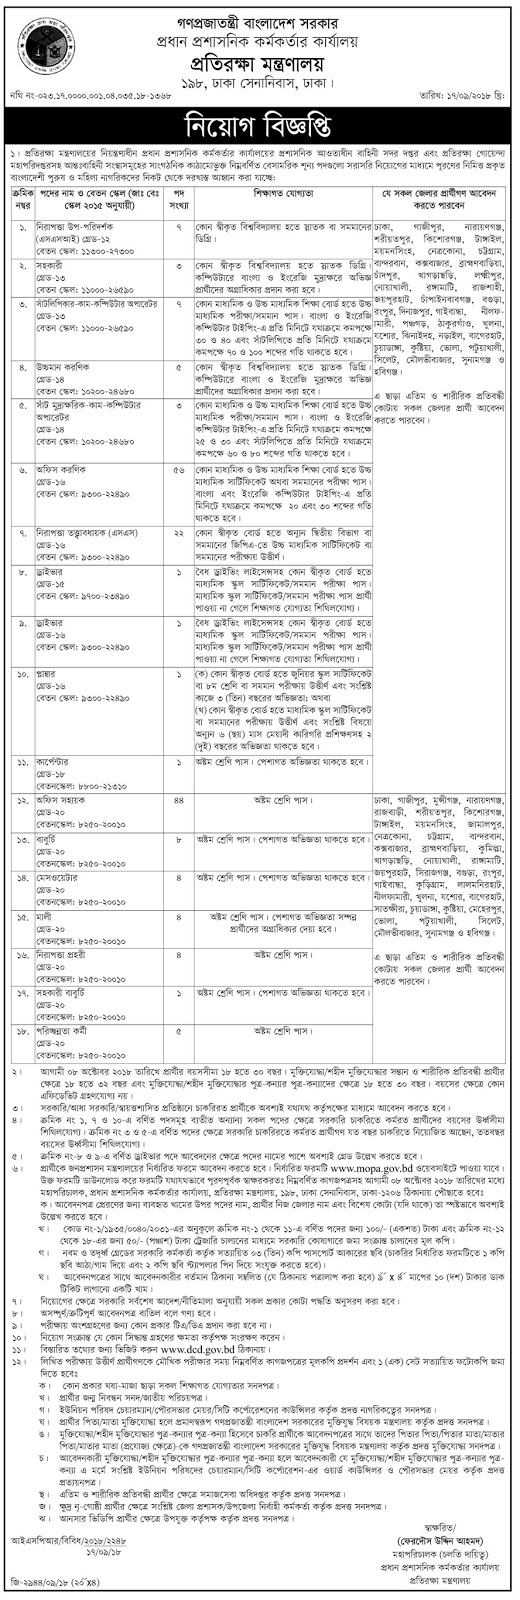 Office of the Chief Administrative Officer, Ministry of Defense Job Apply Instruction, Educational Qualification, Salary, Application Fee, Age and Other Information